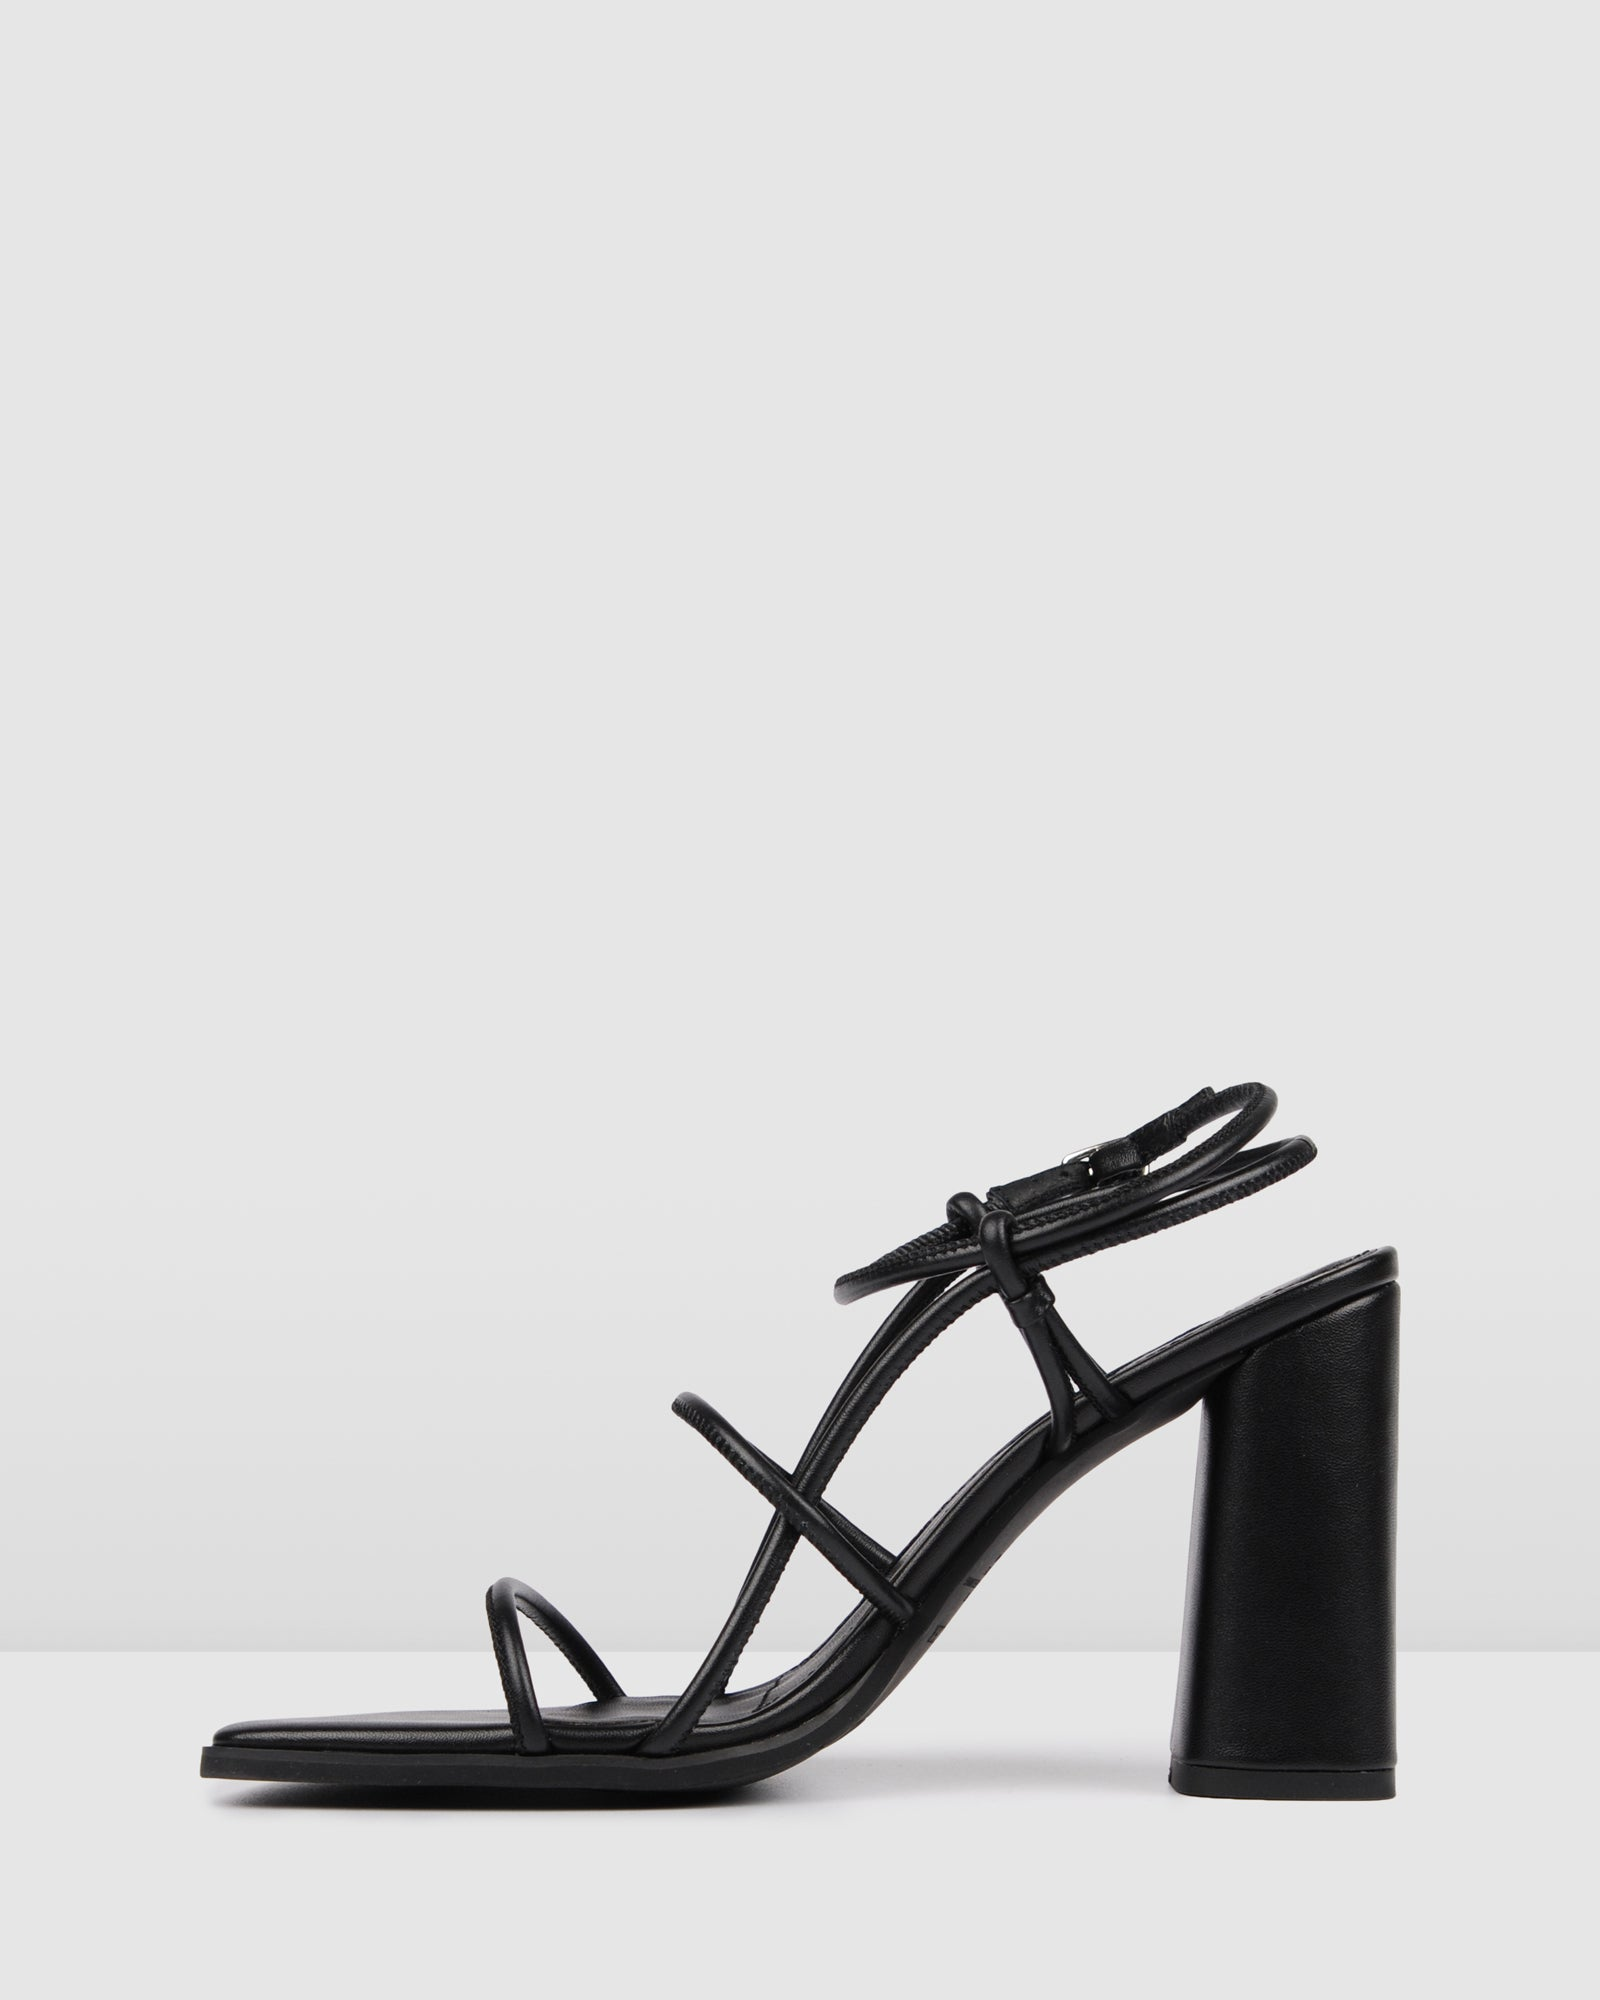 ADDISON HIGH HEEL SANDALS BLACK LEATHER